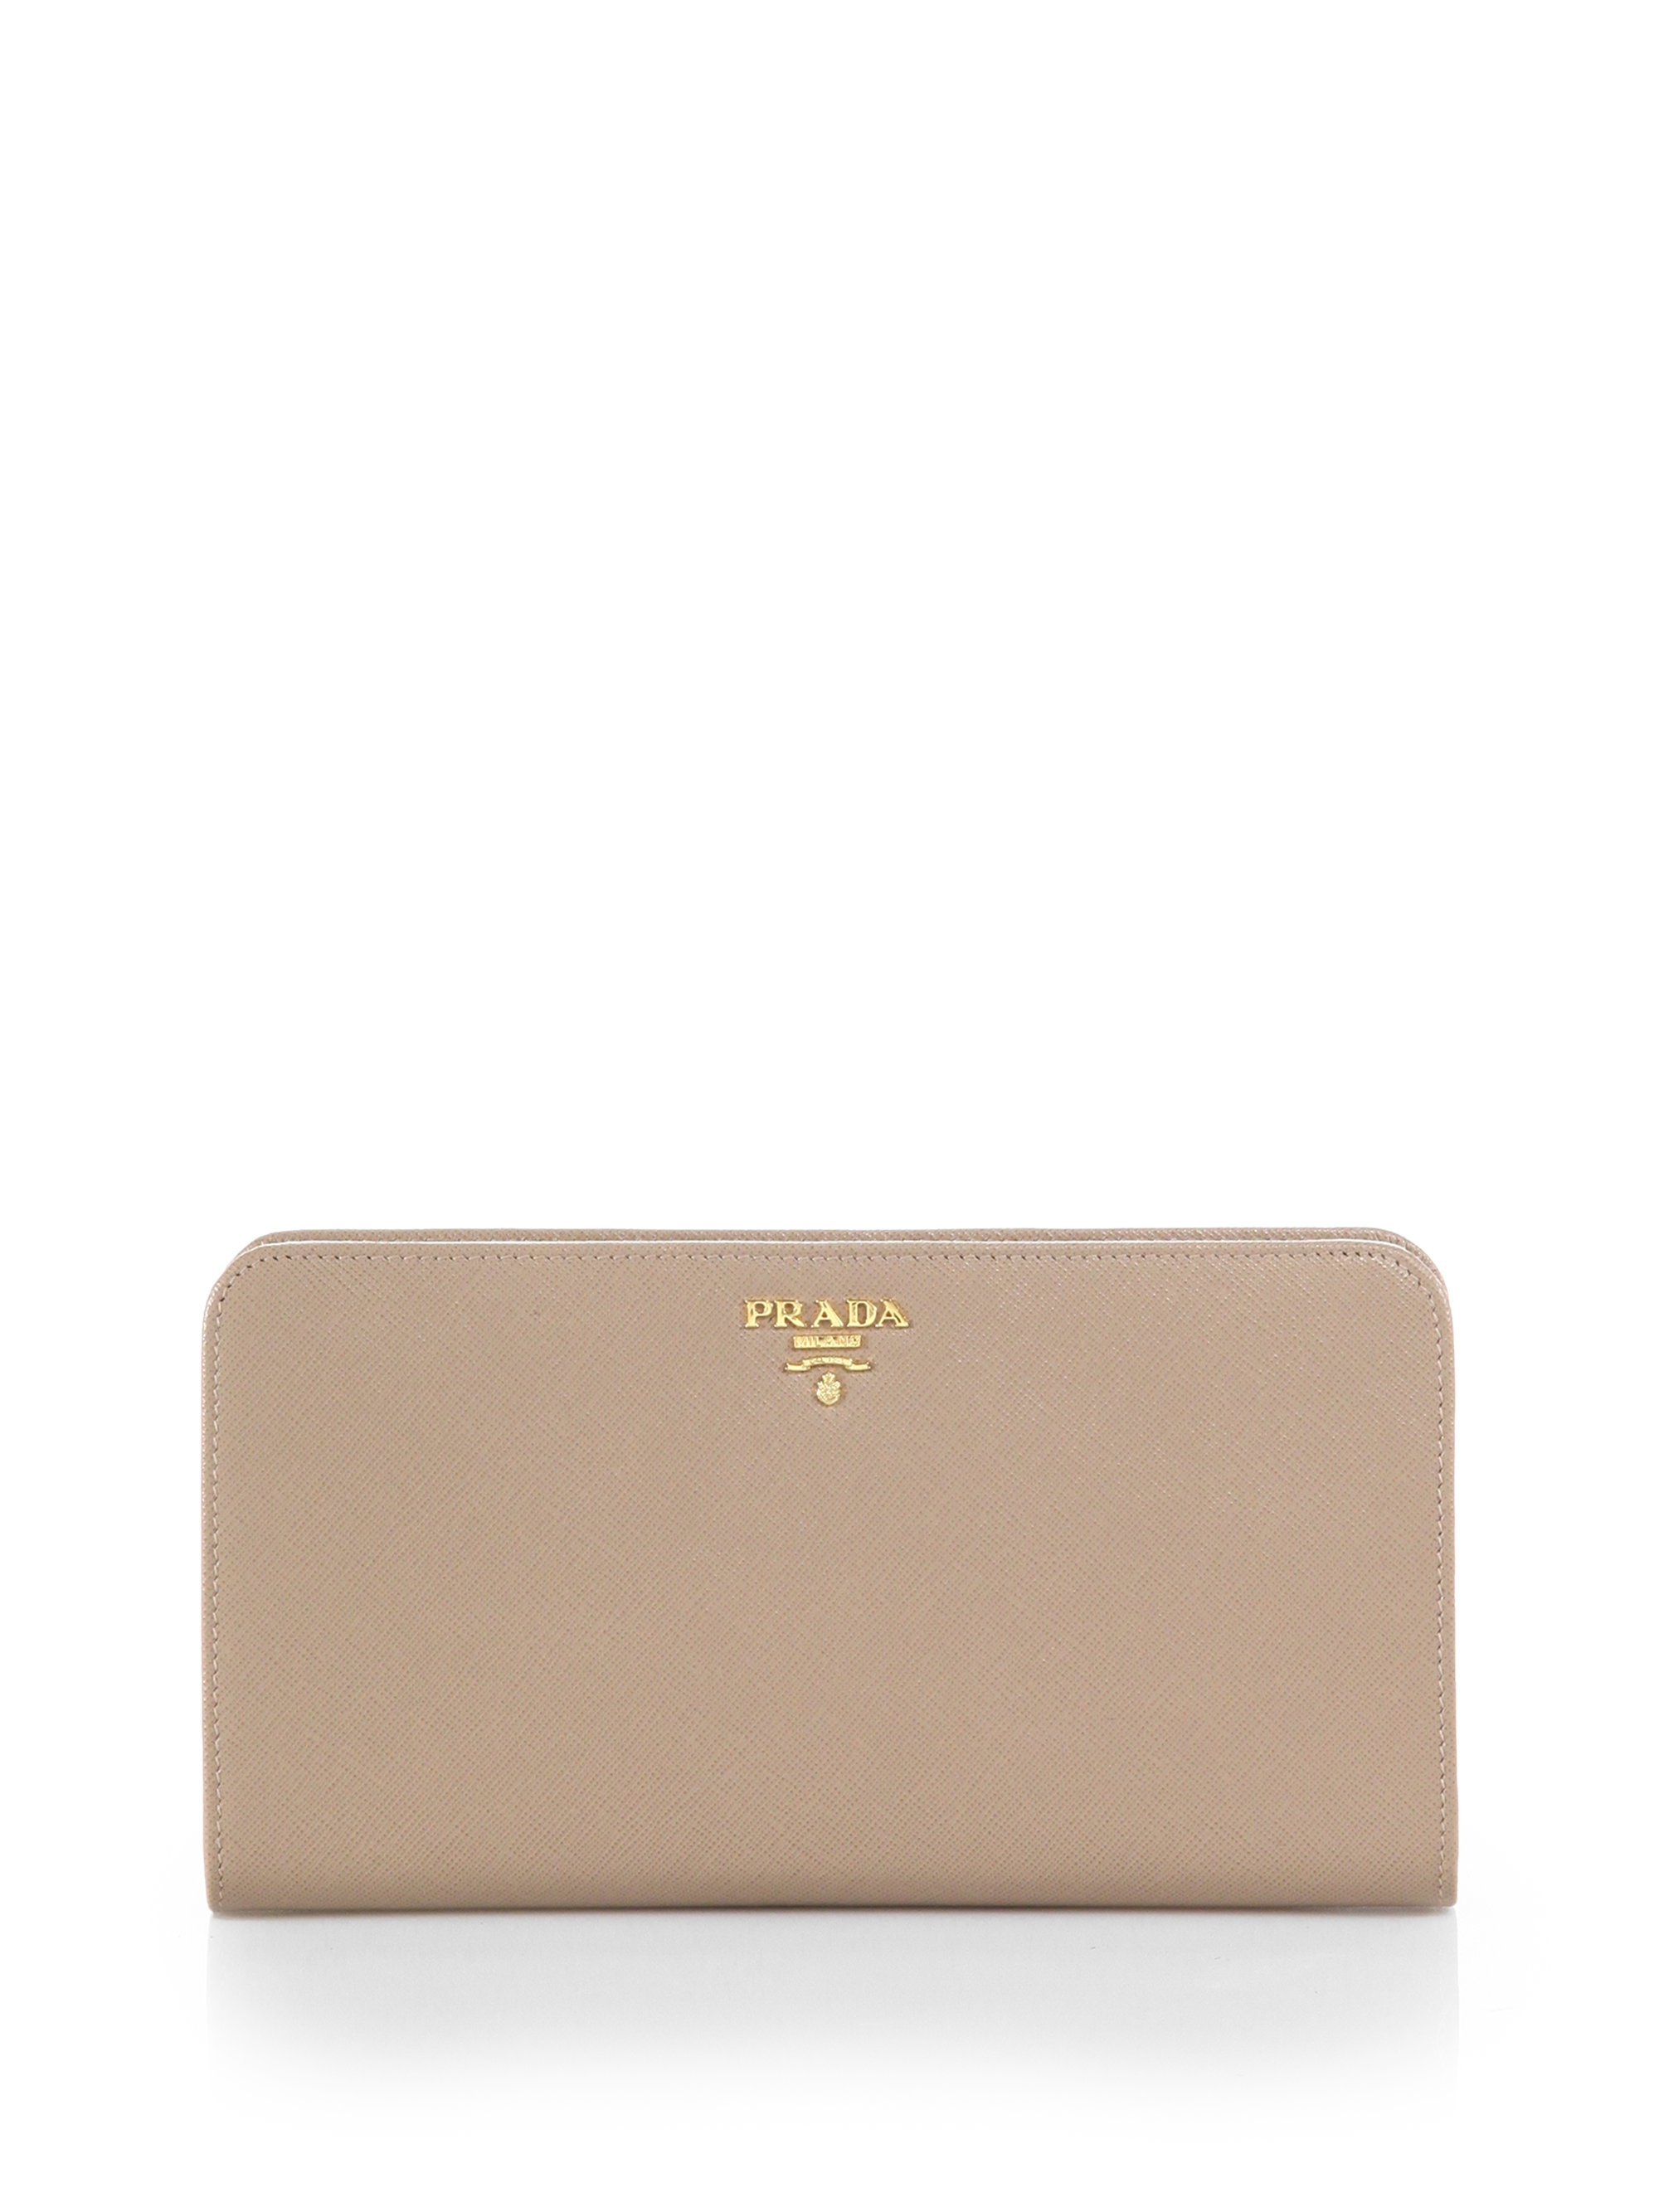 46fbbe632b142f Prada Large Saffiano Leather Wallet in Natural - Lyst